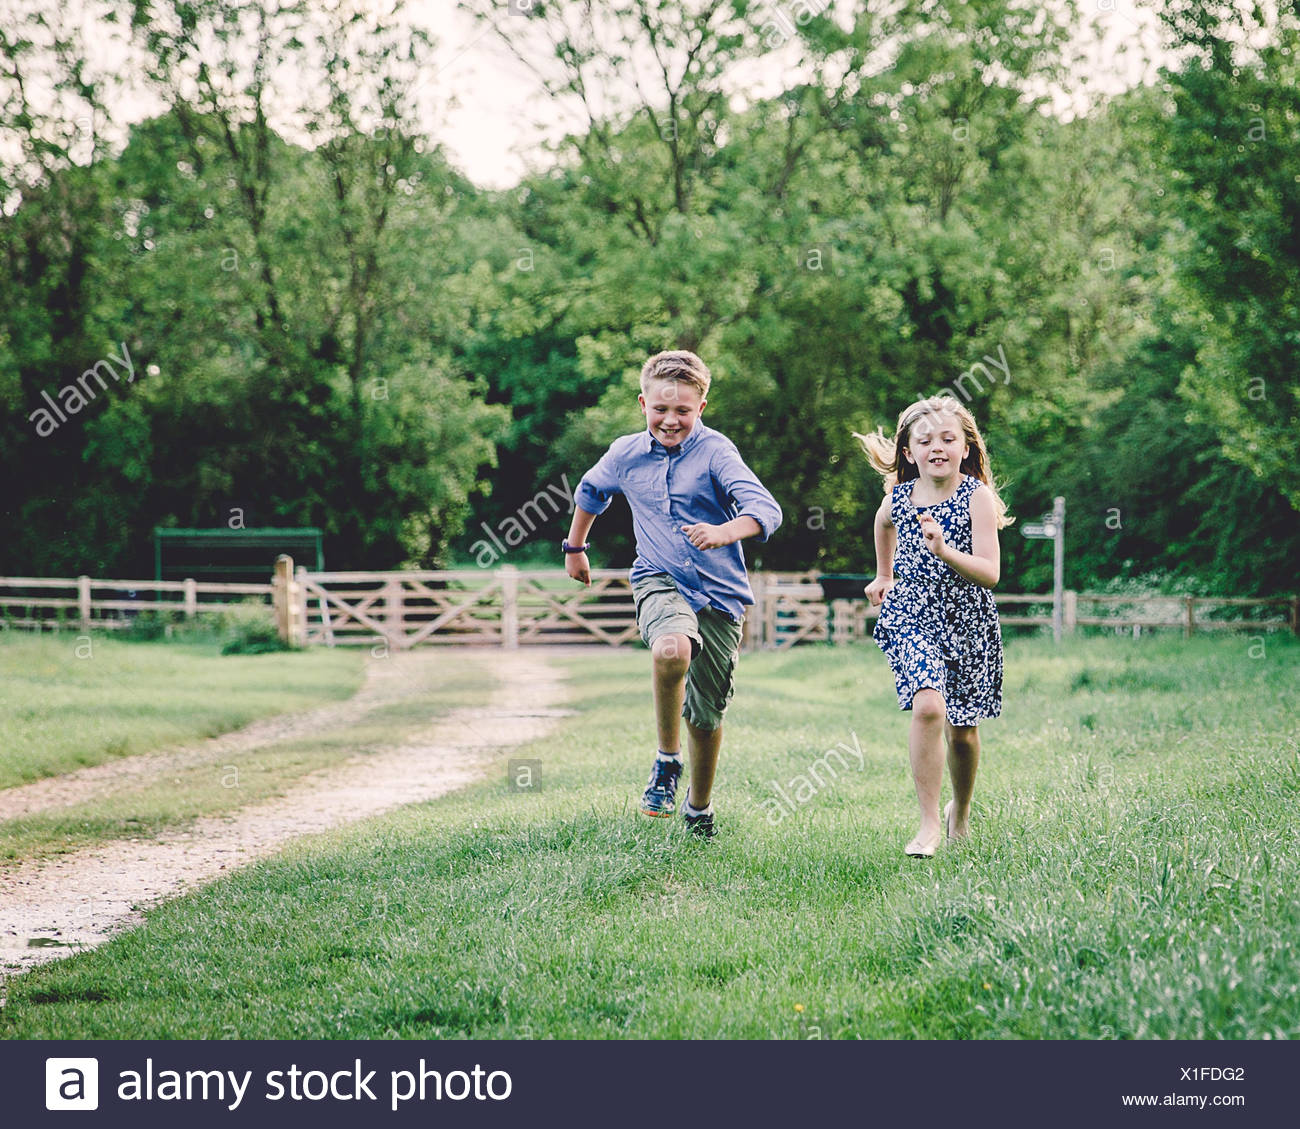 Two children racing each other in a field - Stock Image